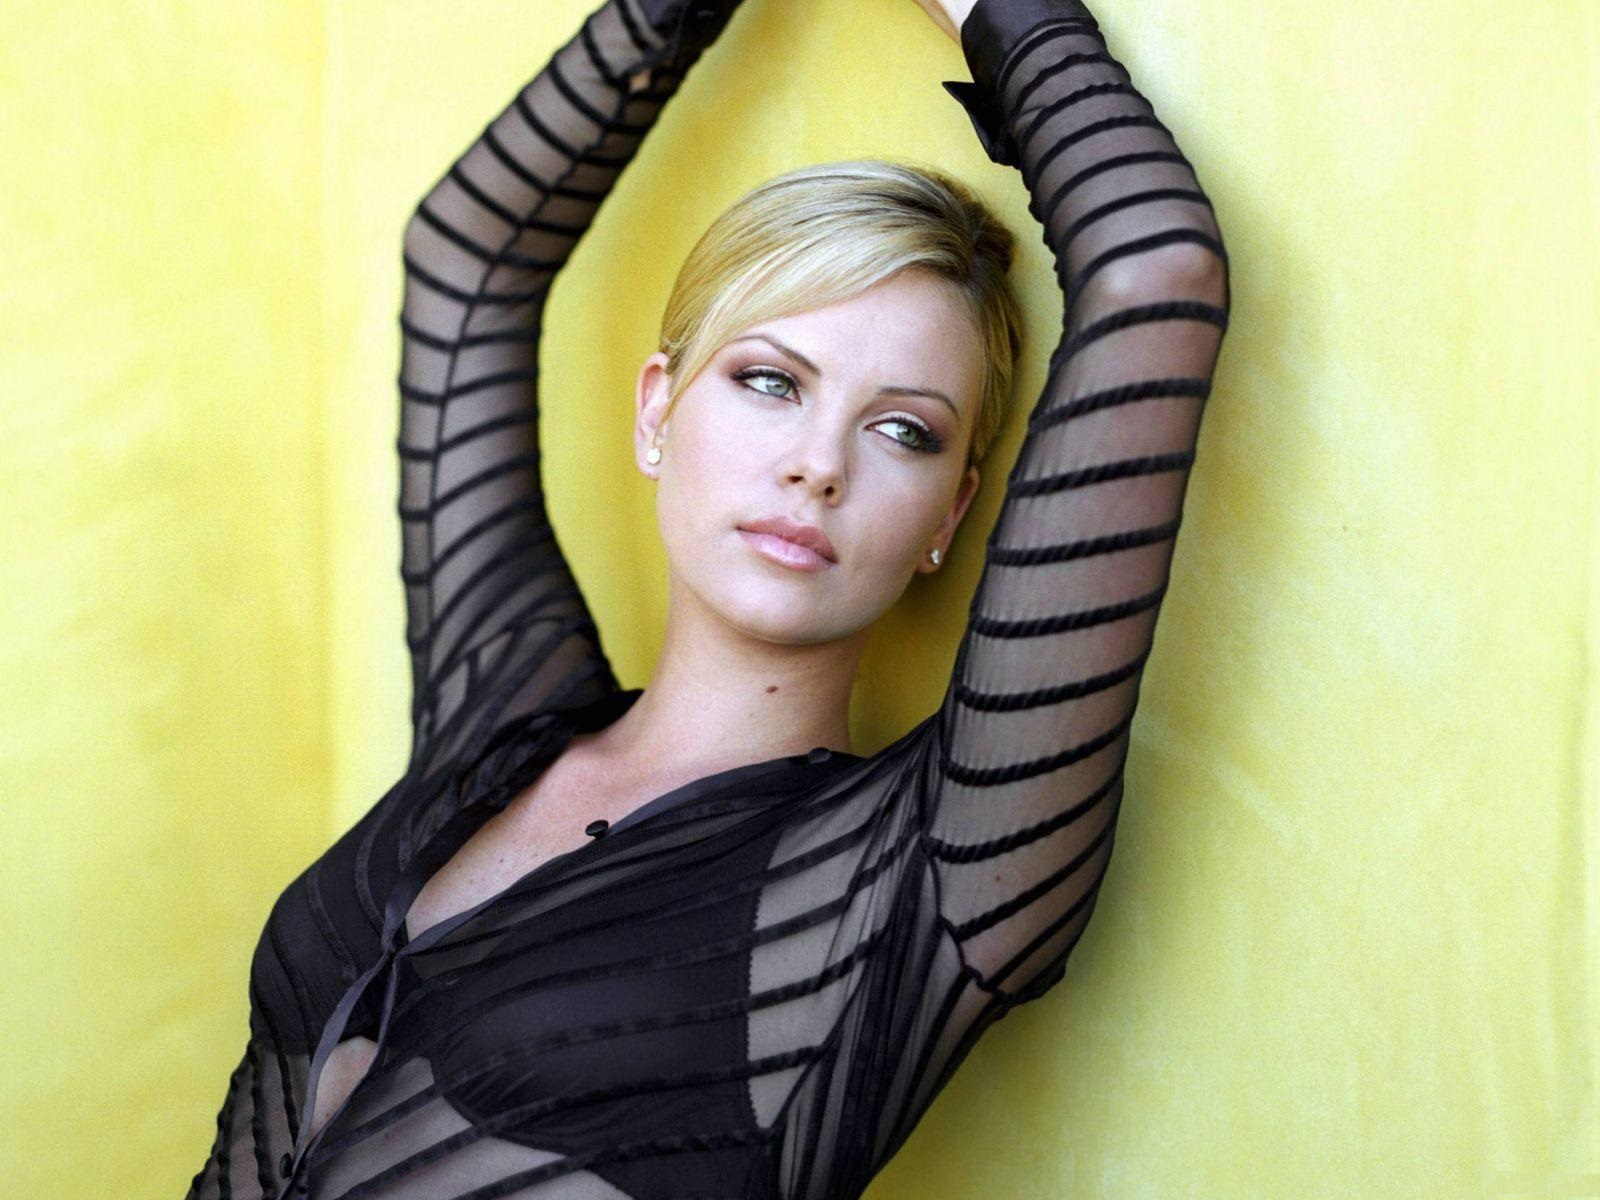 high quality free awesome hd charlize theron pics